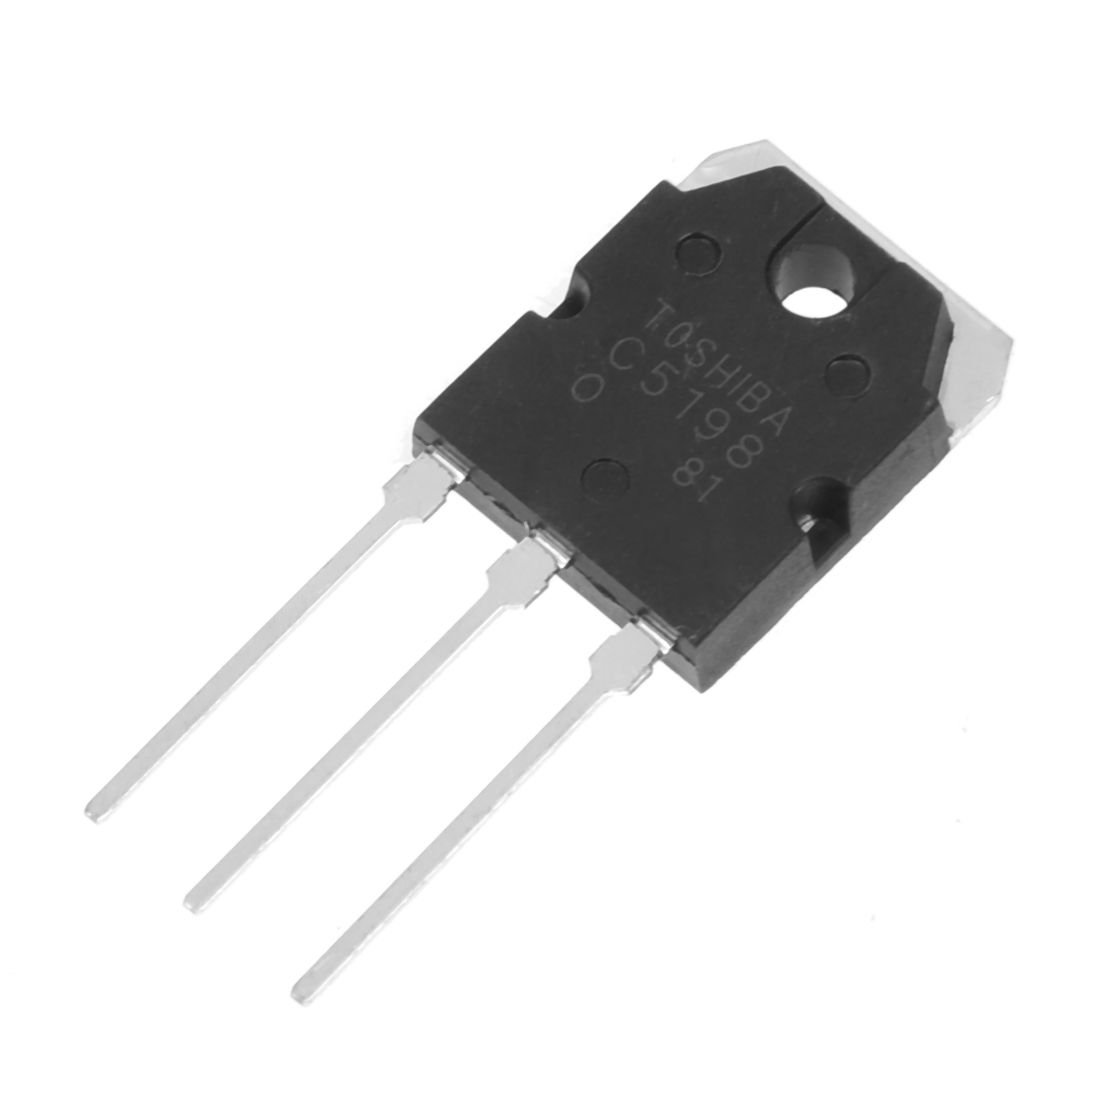 Cheap Transistor Amplifier Find Deals On Line Amplifiers Get Quotations Toogoor Pair A1941 C5198 10a 200v Power Silicon